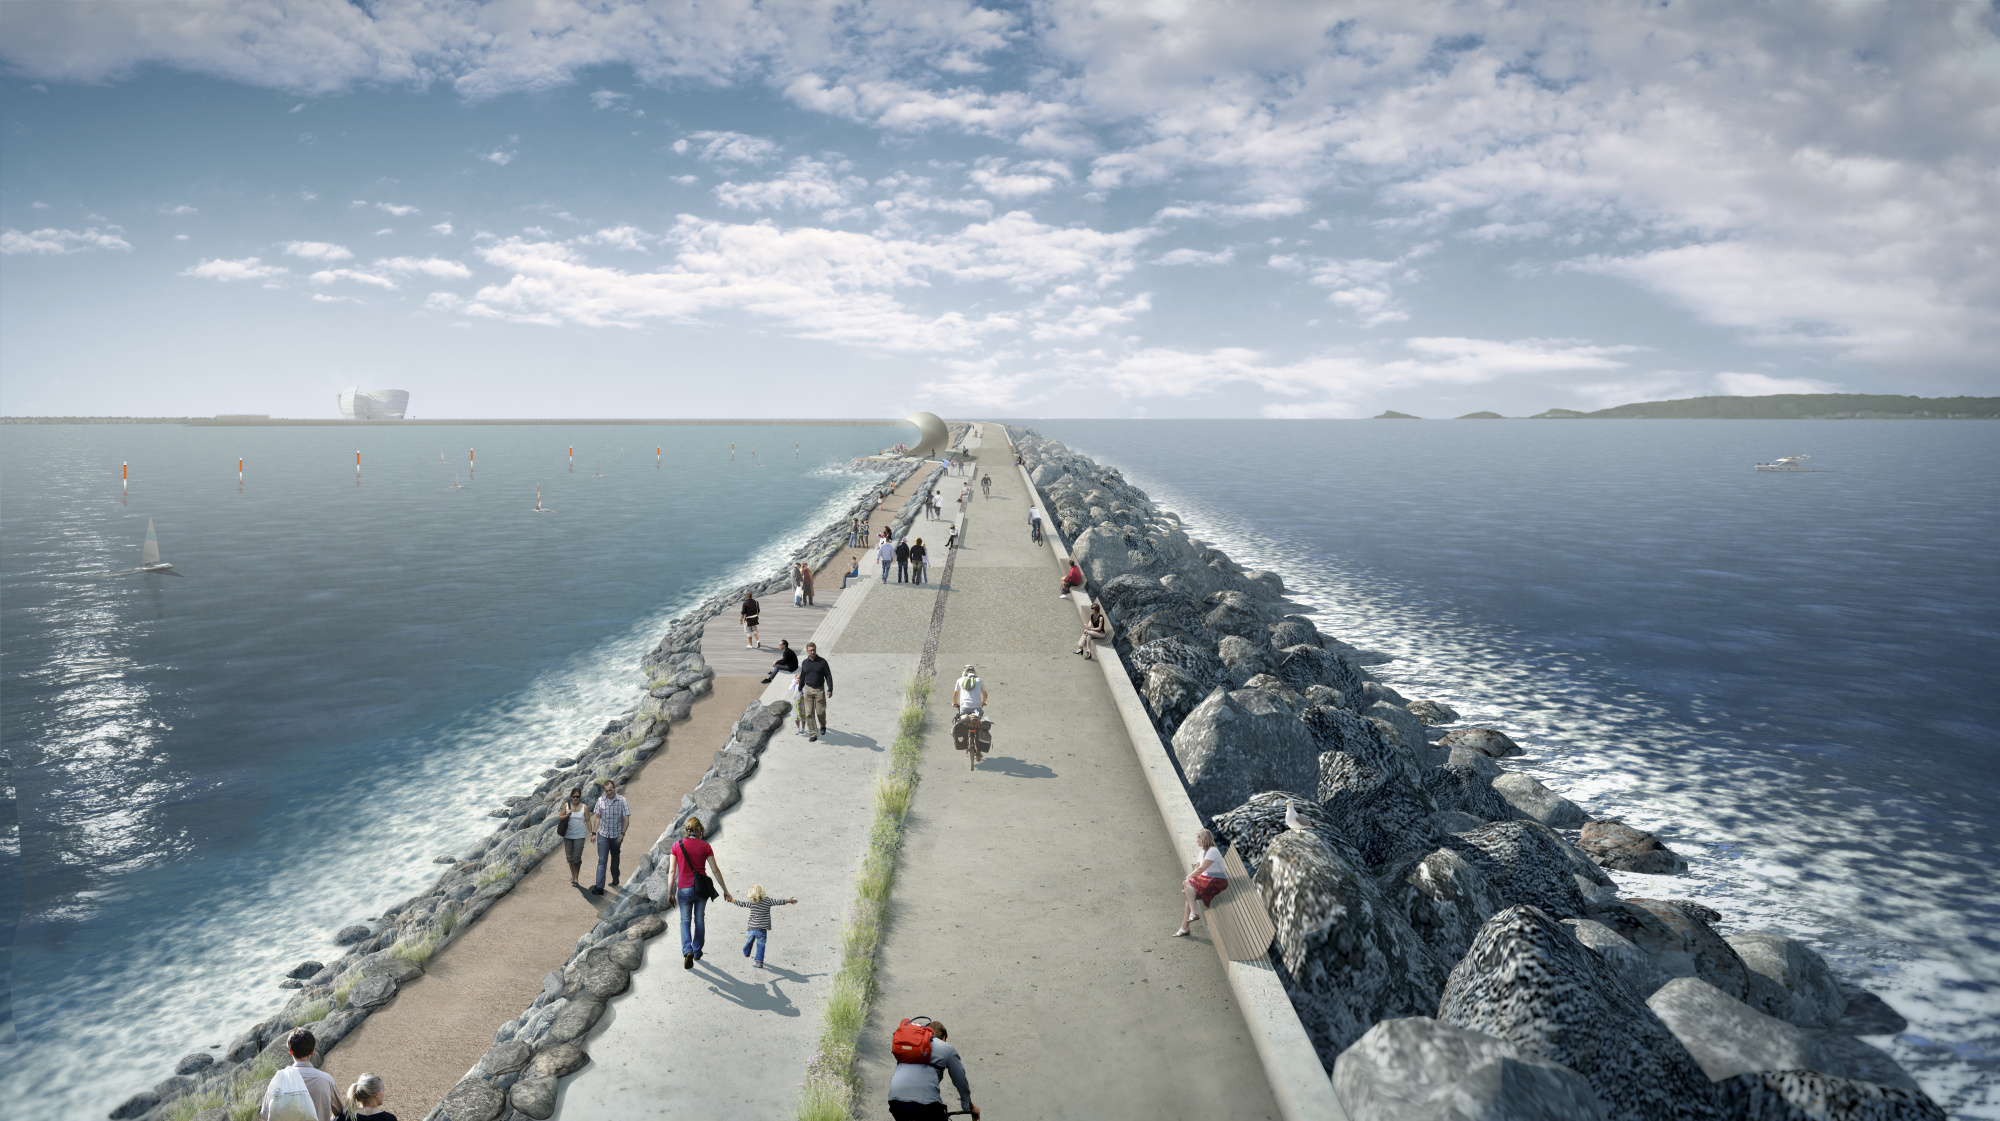 U.K. weighs tidal power contract matching Hinkley nuclear deal